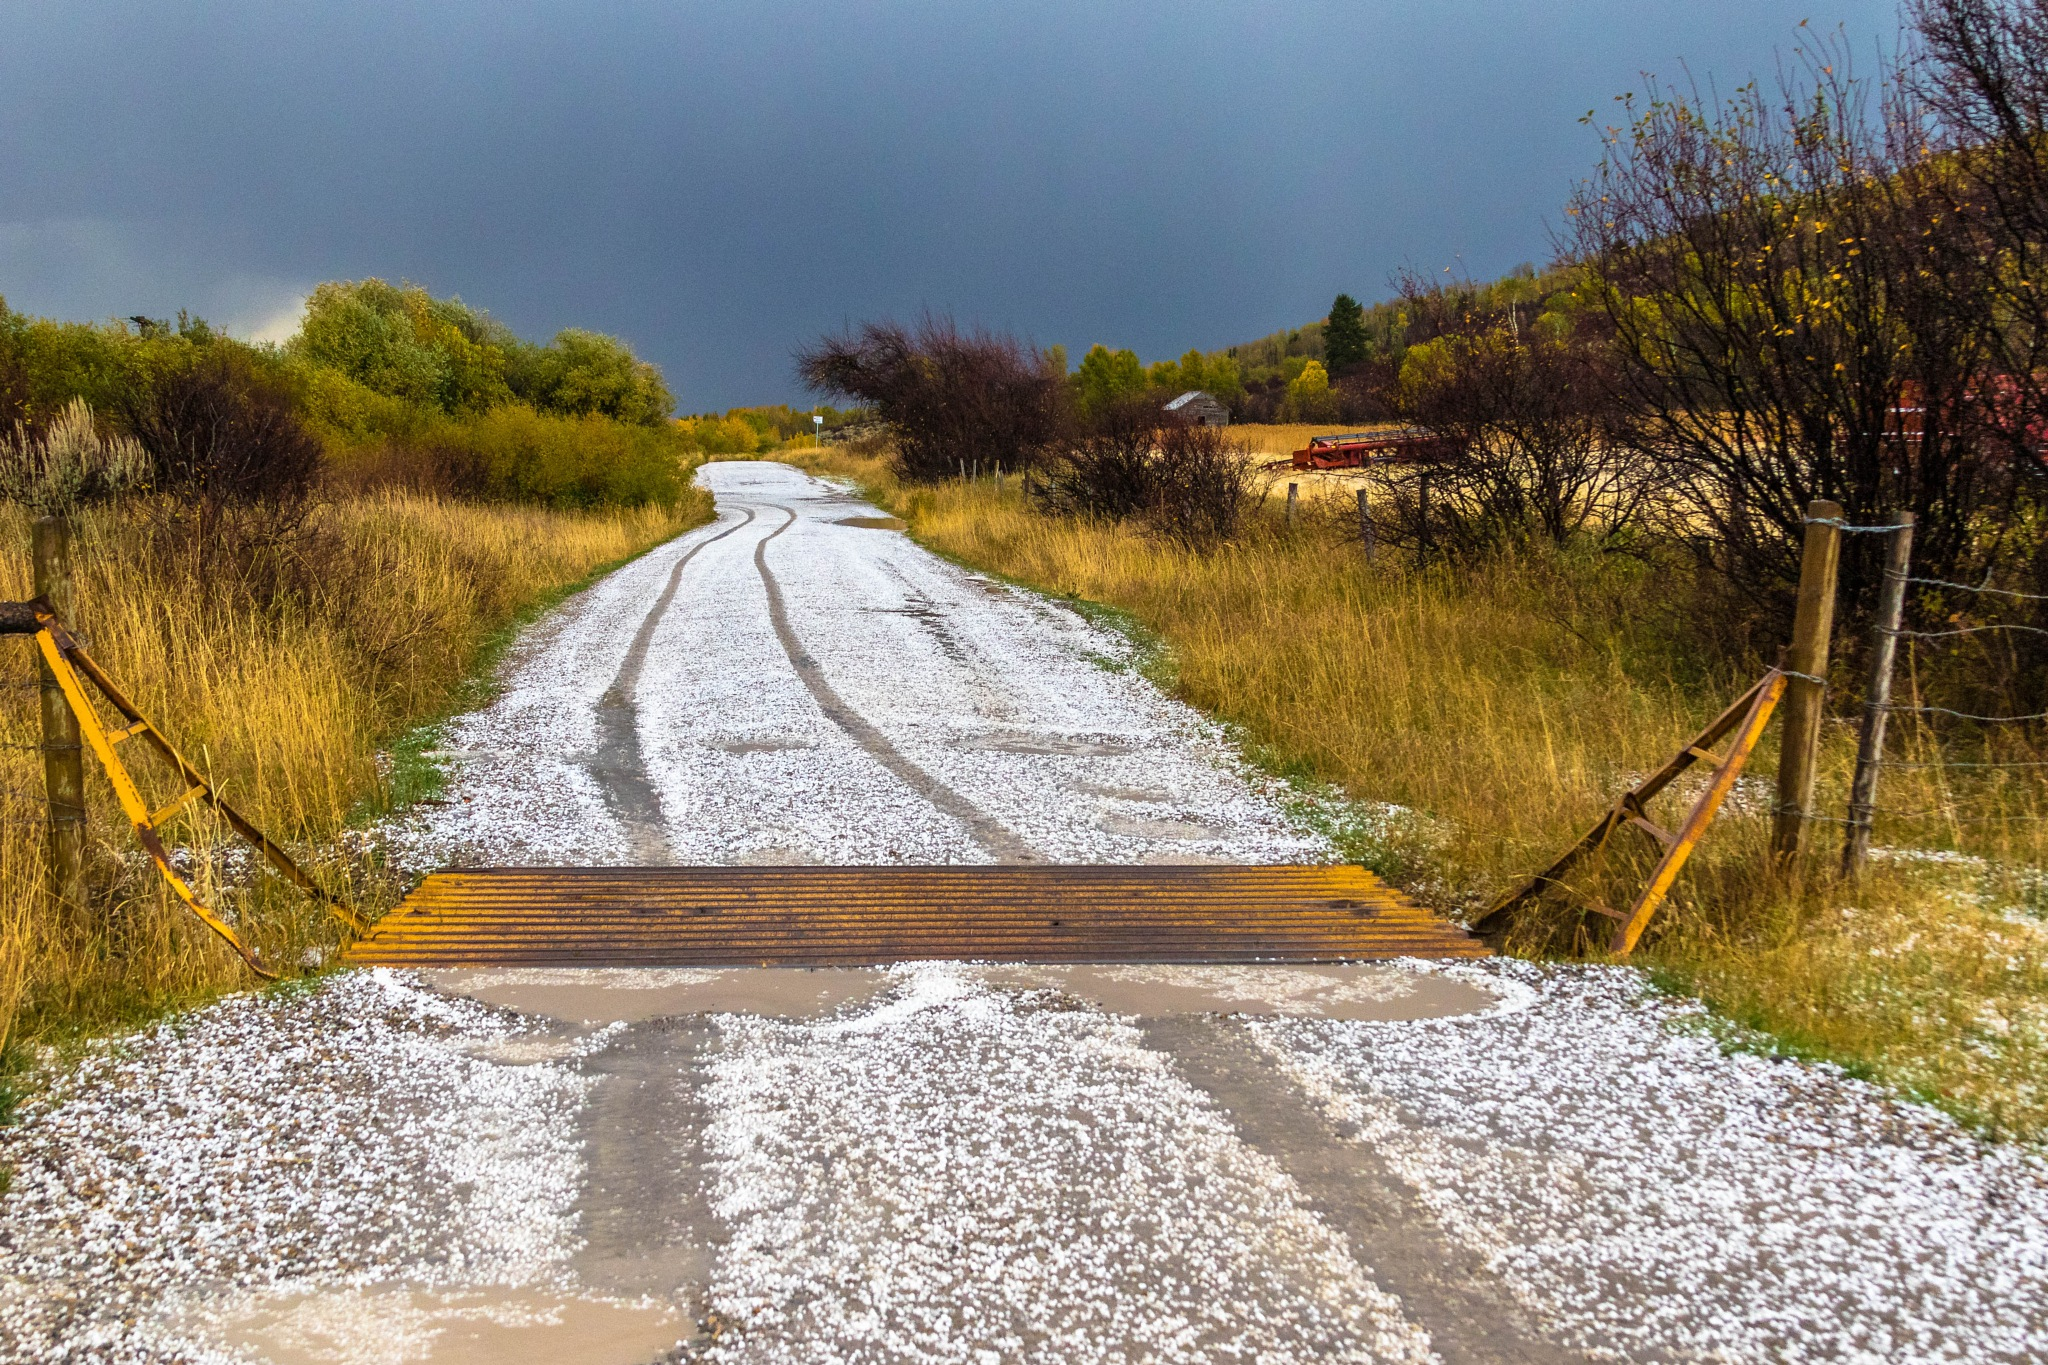 Cattle Guard Rail and Hail by drchad480